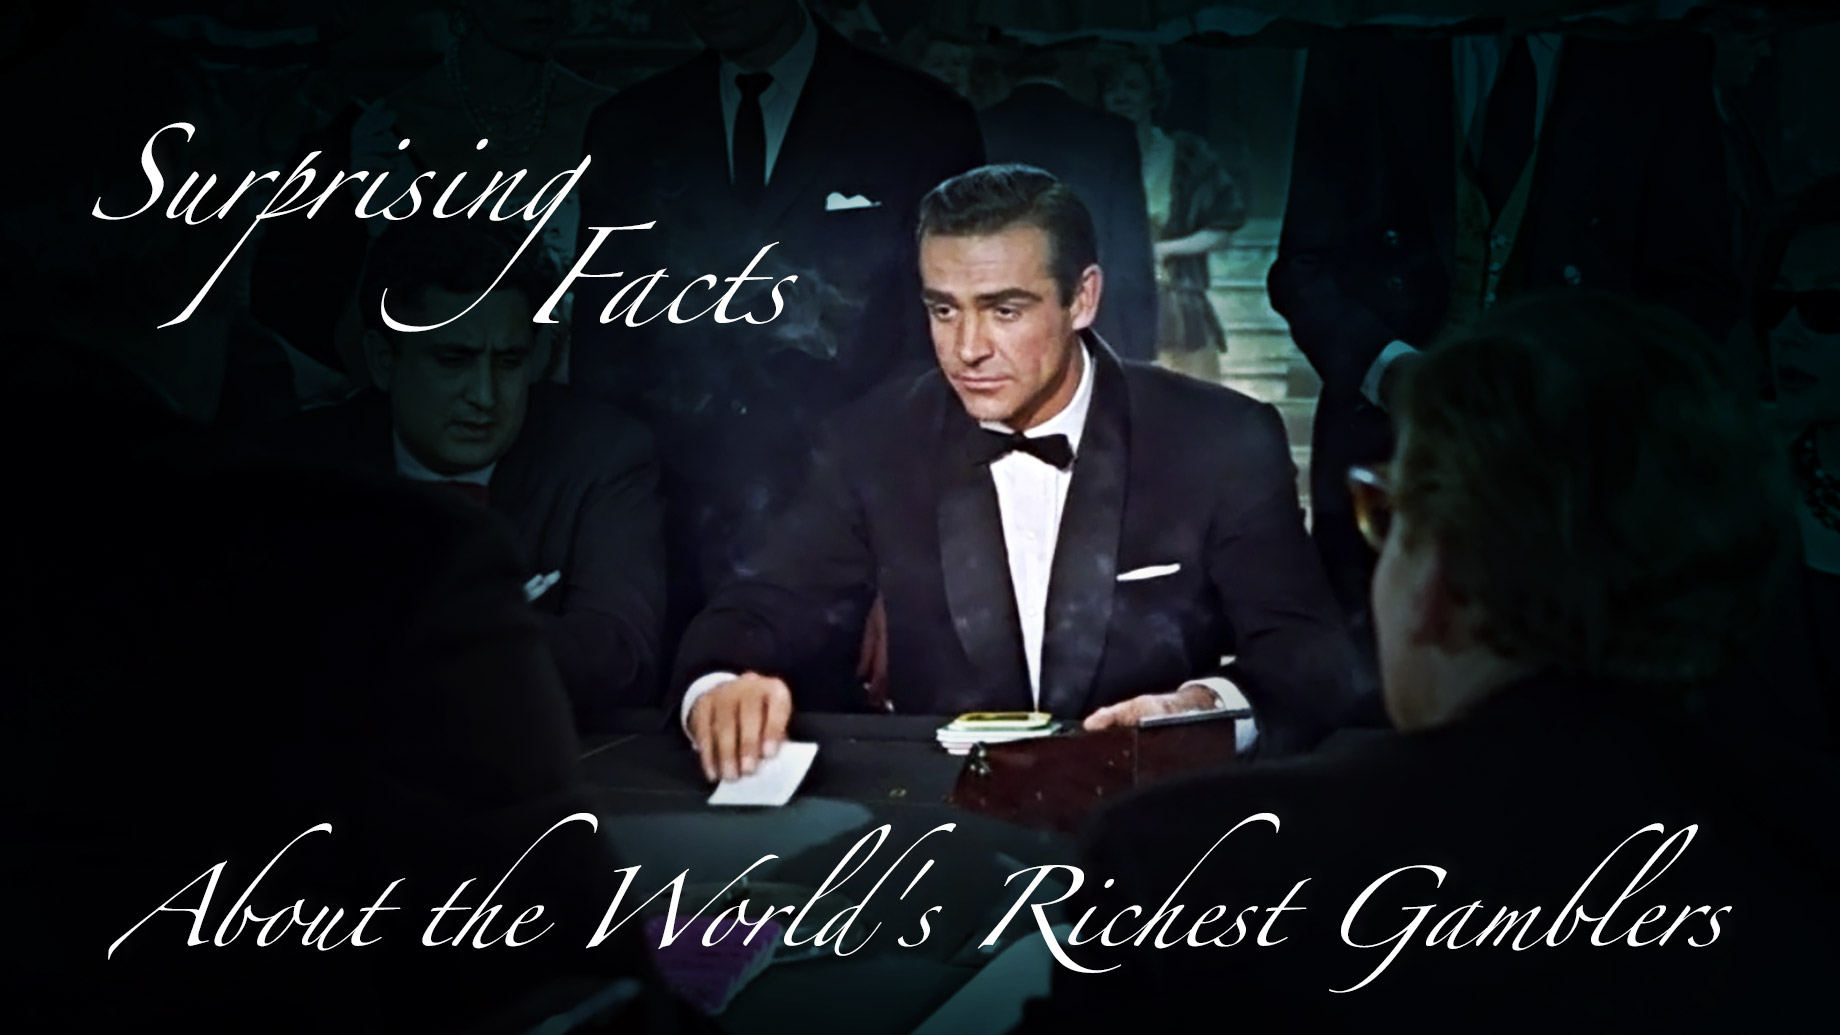 Surprising Facts About the World's Richest Gamblers - Featuring Sean Connery as 007 James Bond in Dr. No (1962)